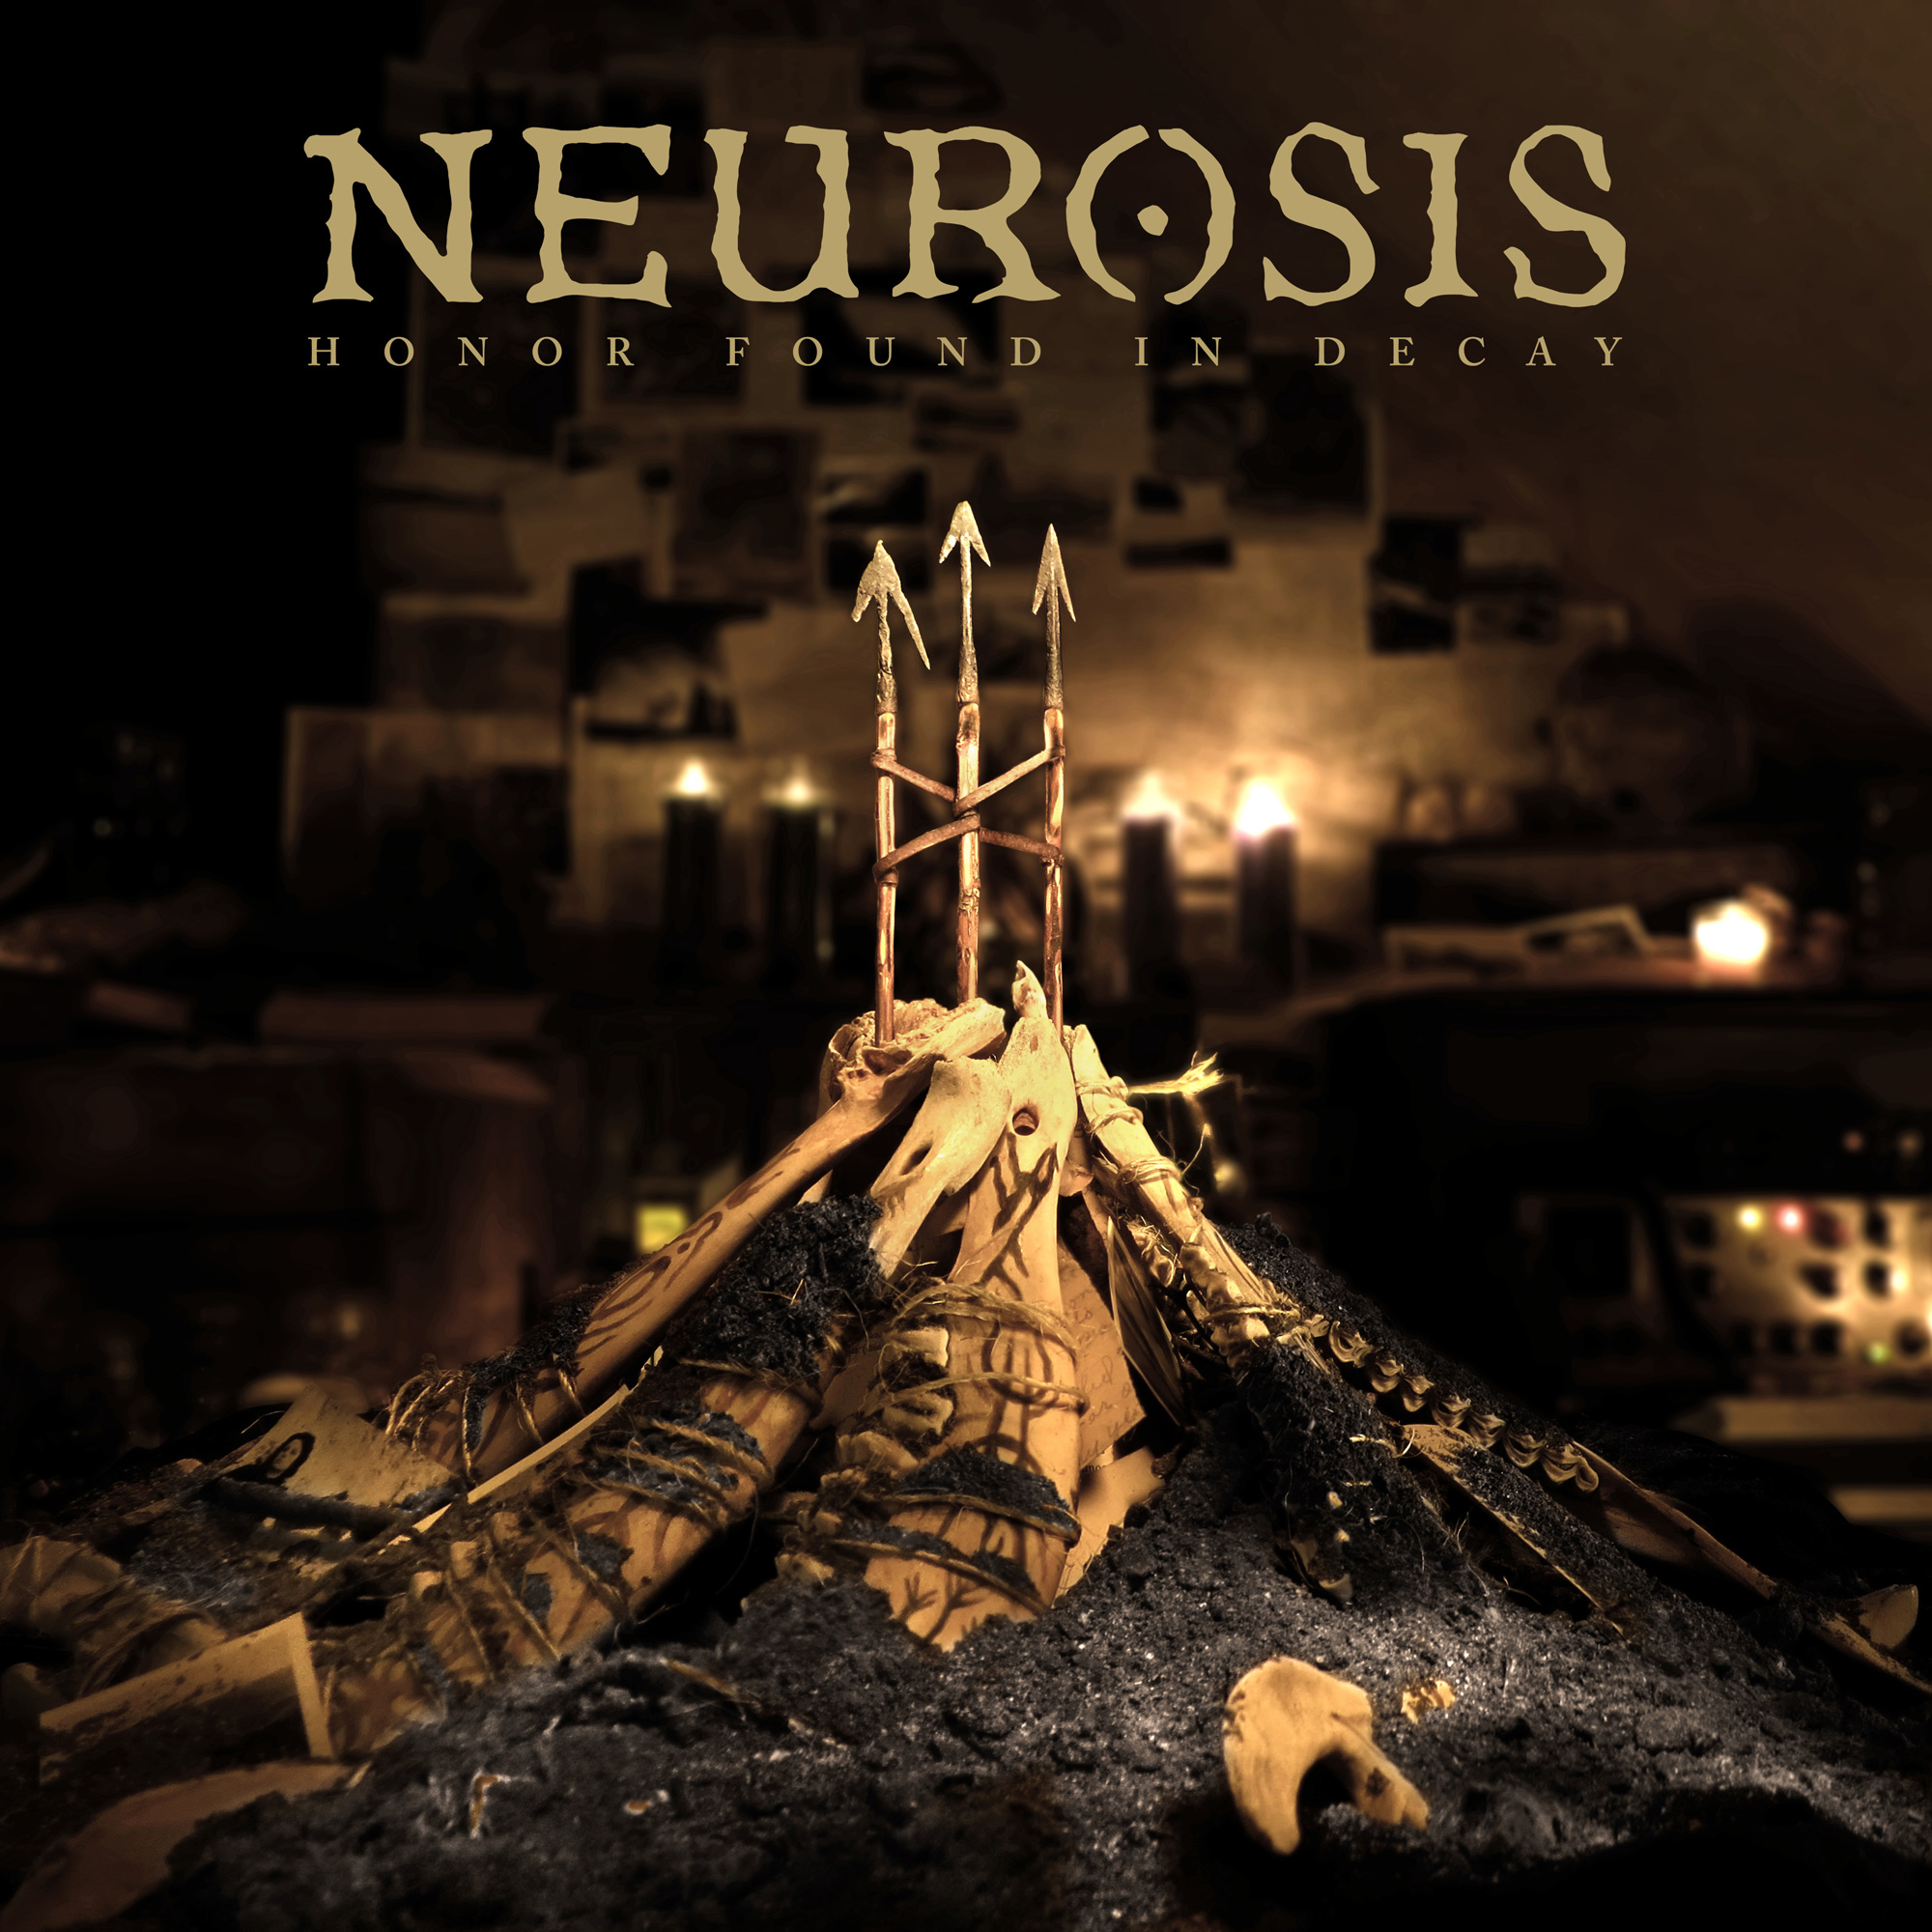 neurosis-honor-found-in-decay-cover-art